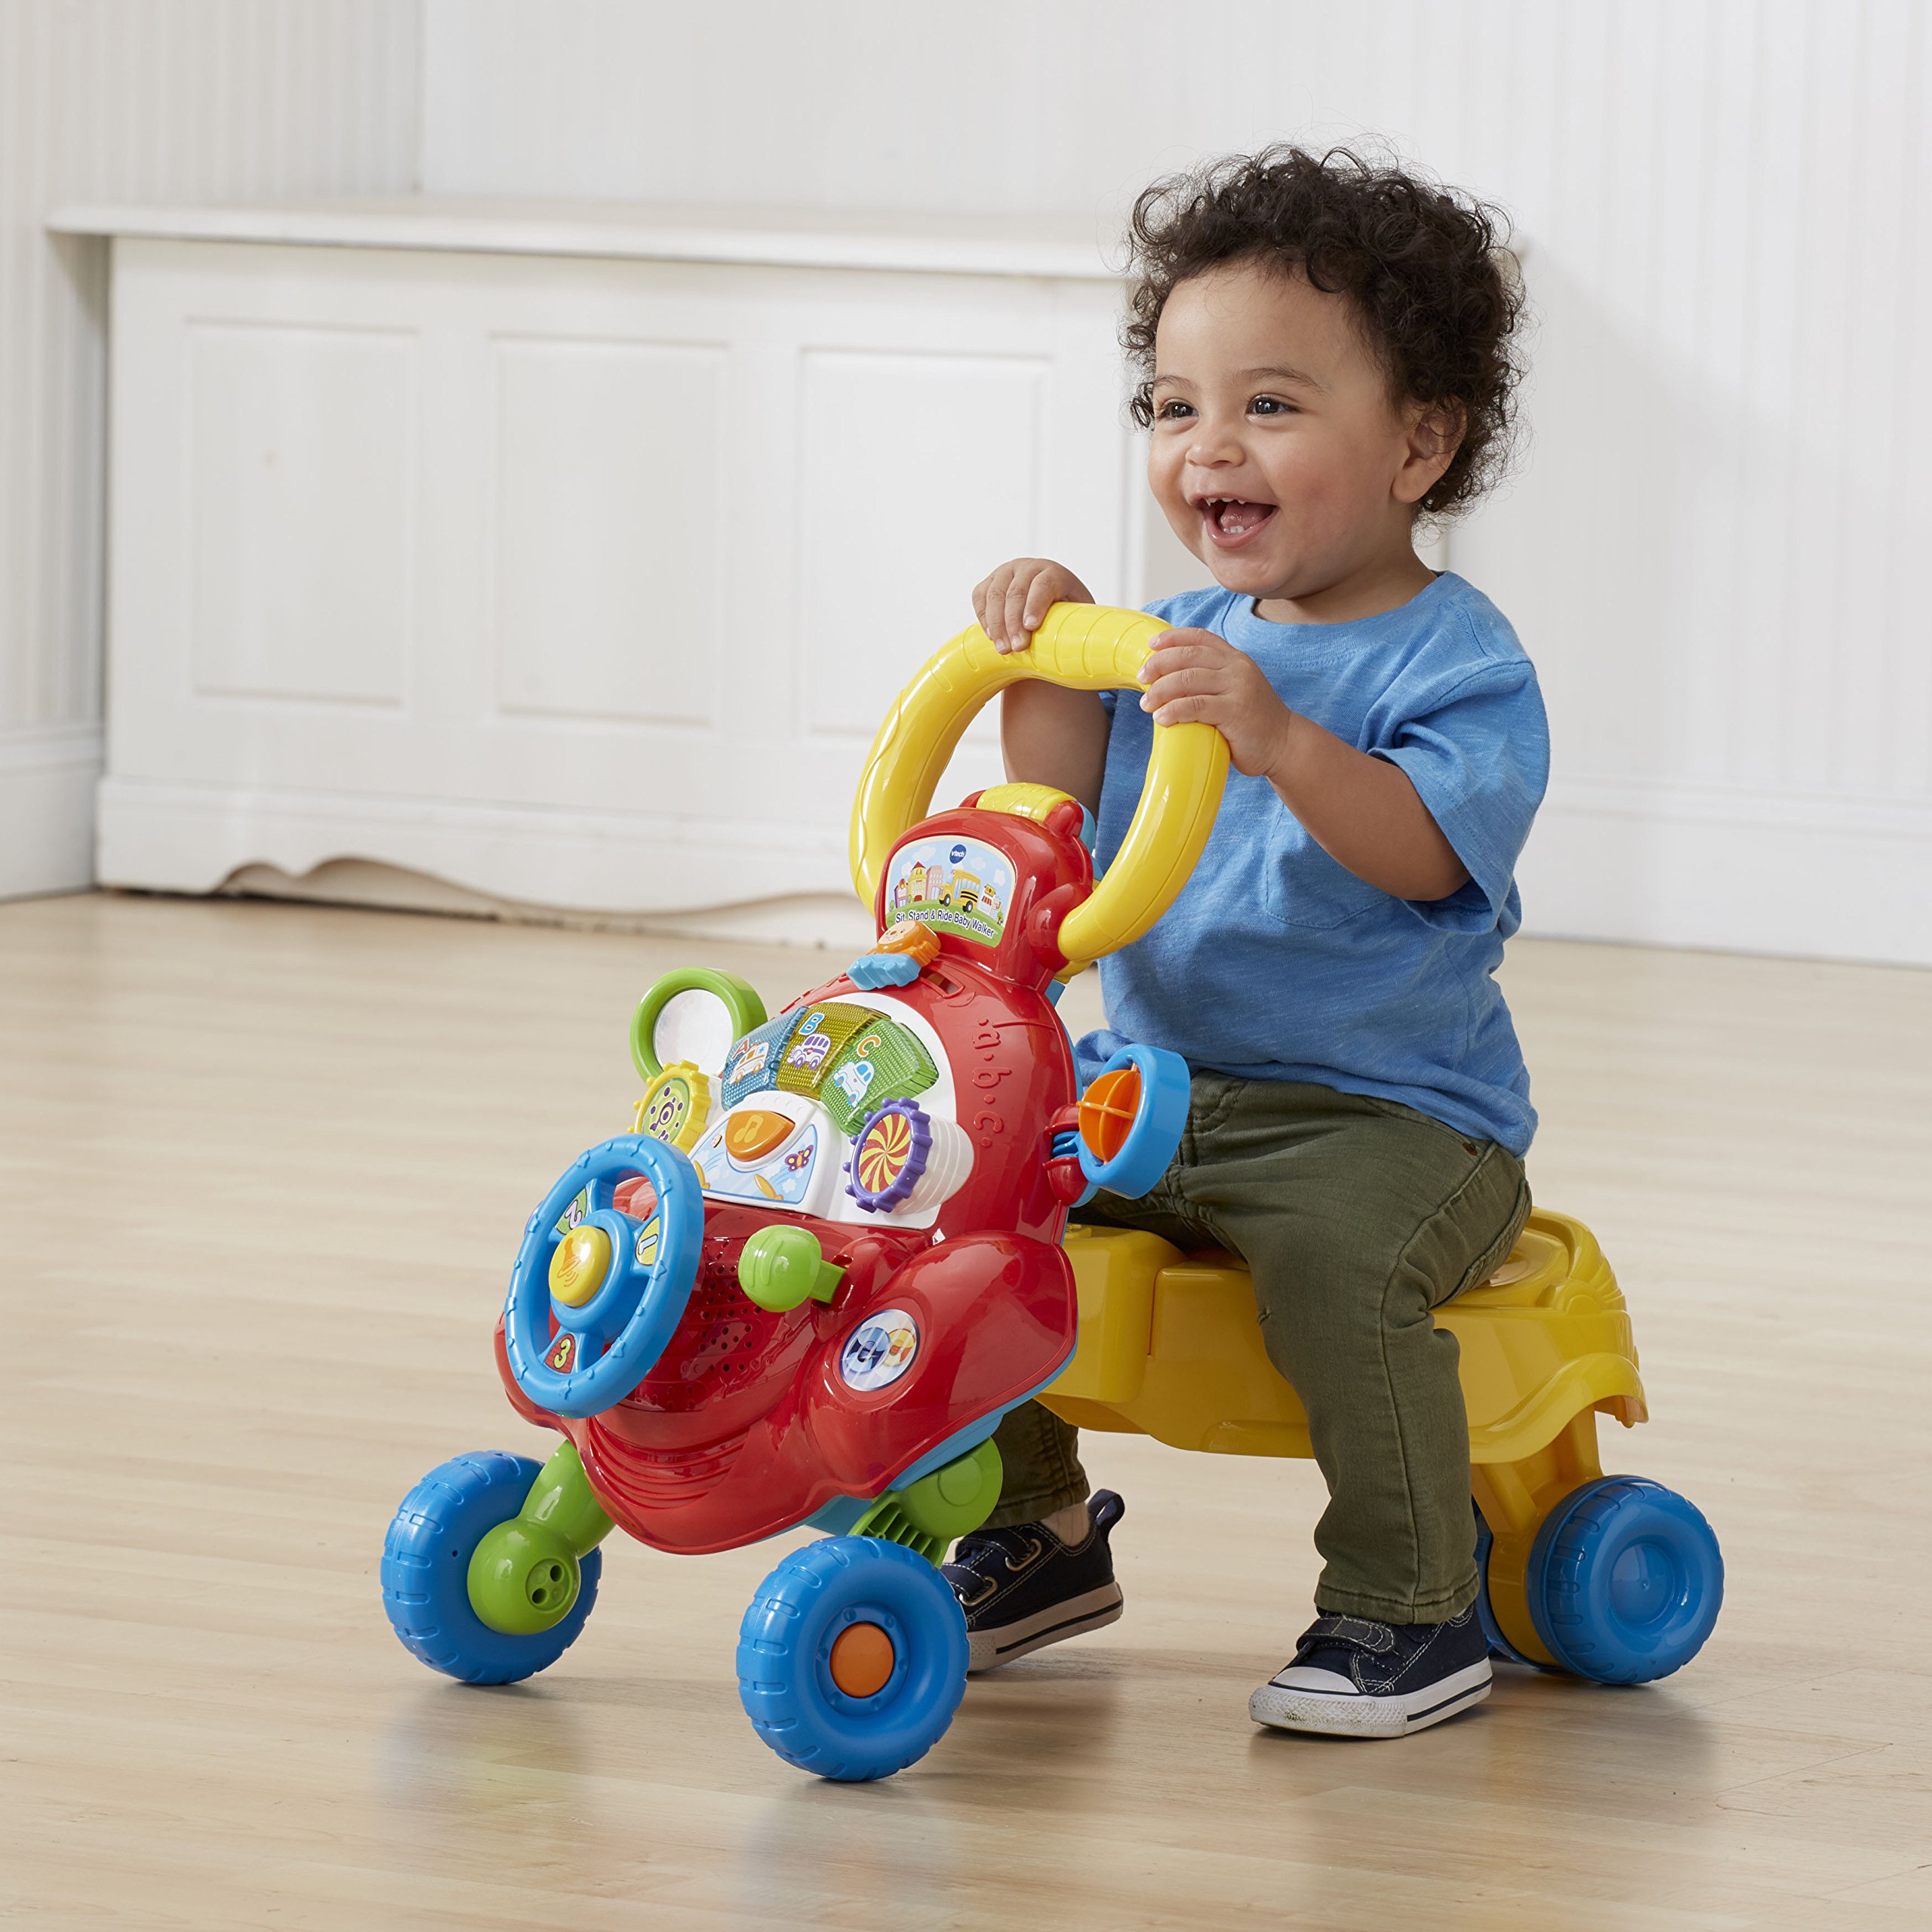 VTech Sit, Stand and Ride Baby Walker (Frustration Free Packaging) (Amazon Exclusive) by VTech (Image #4)